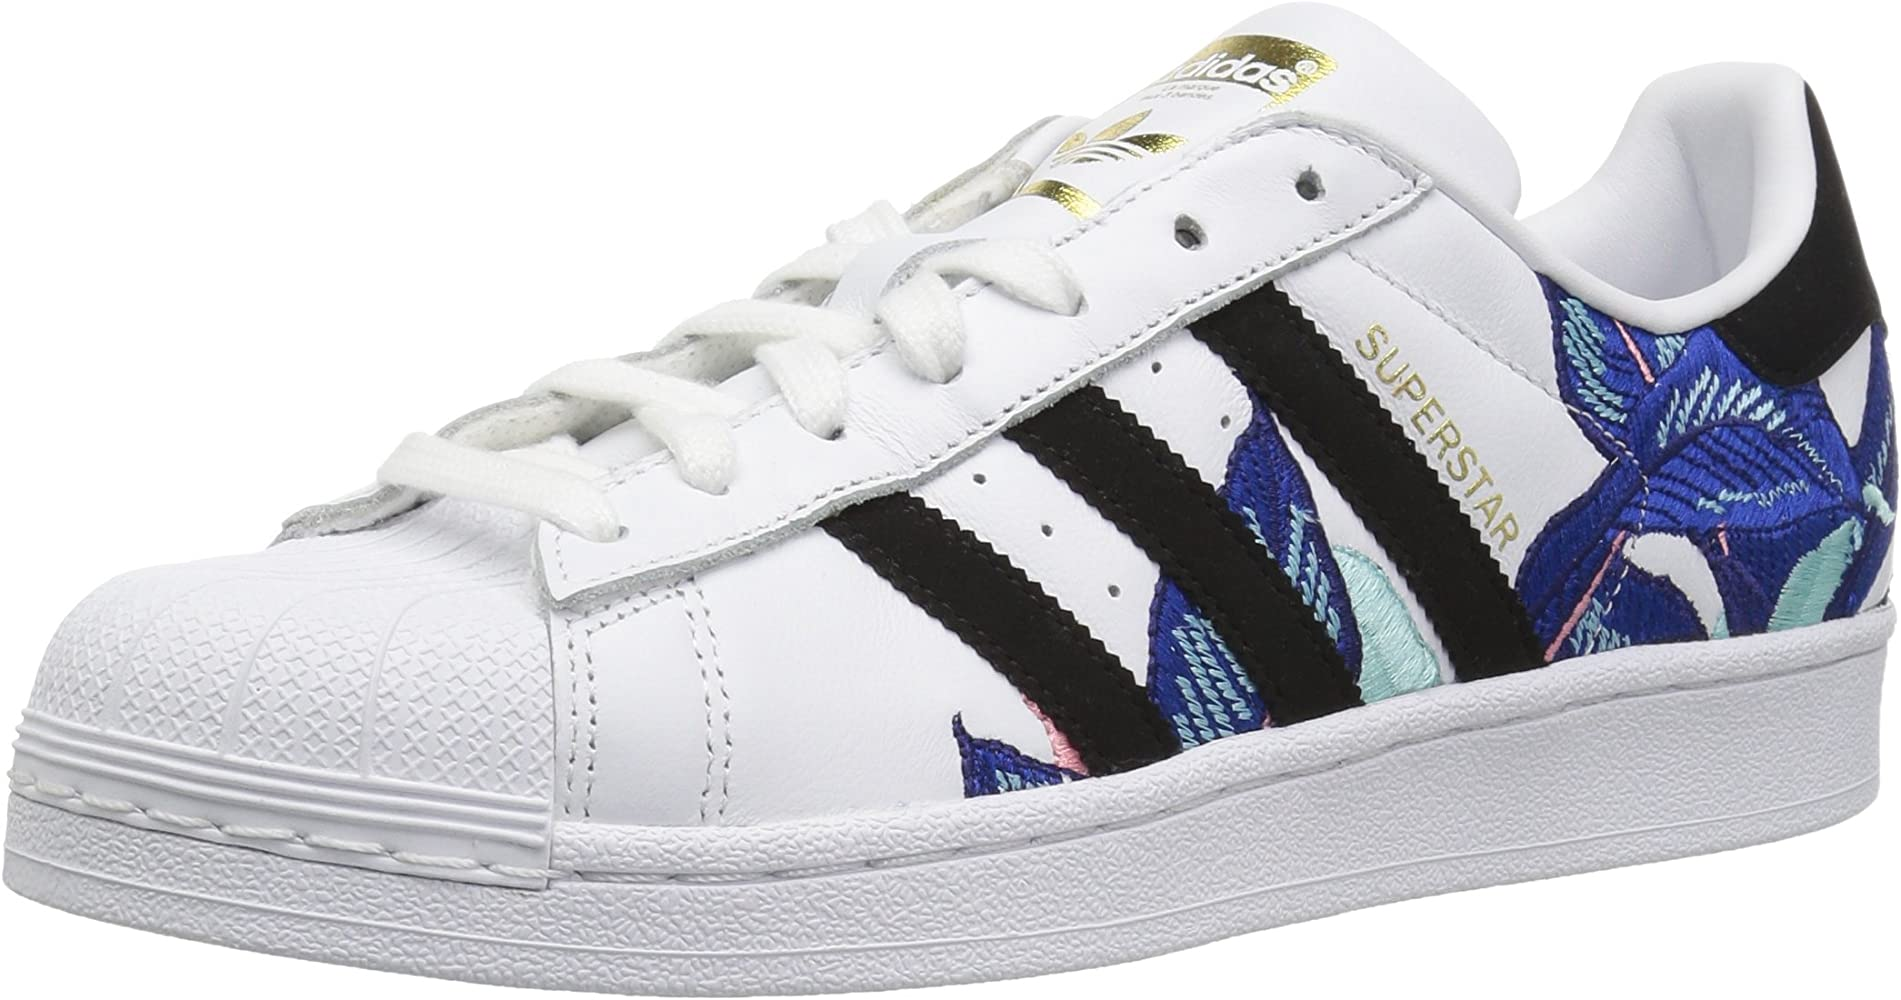 Adidas Womens Originals Superstar W White Black Gold